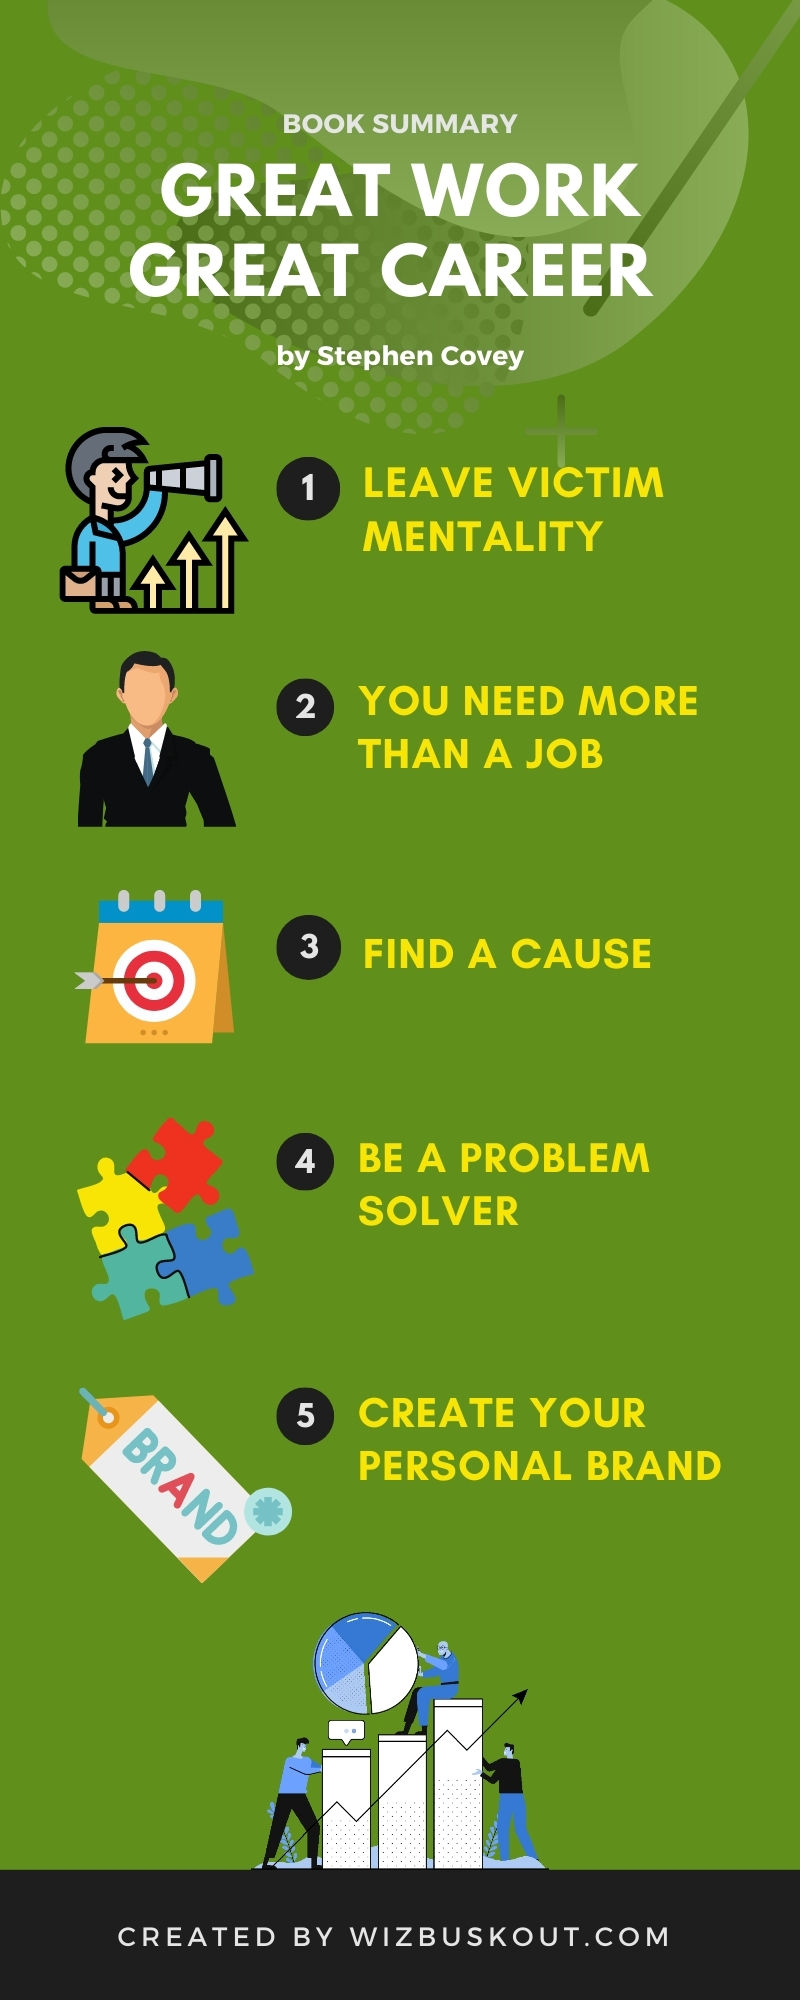 Great Work Great Career Summary Infographic